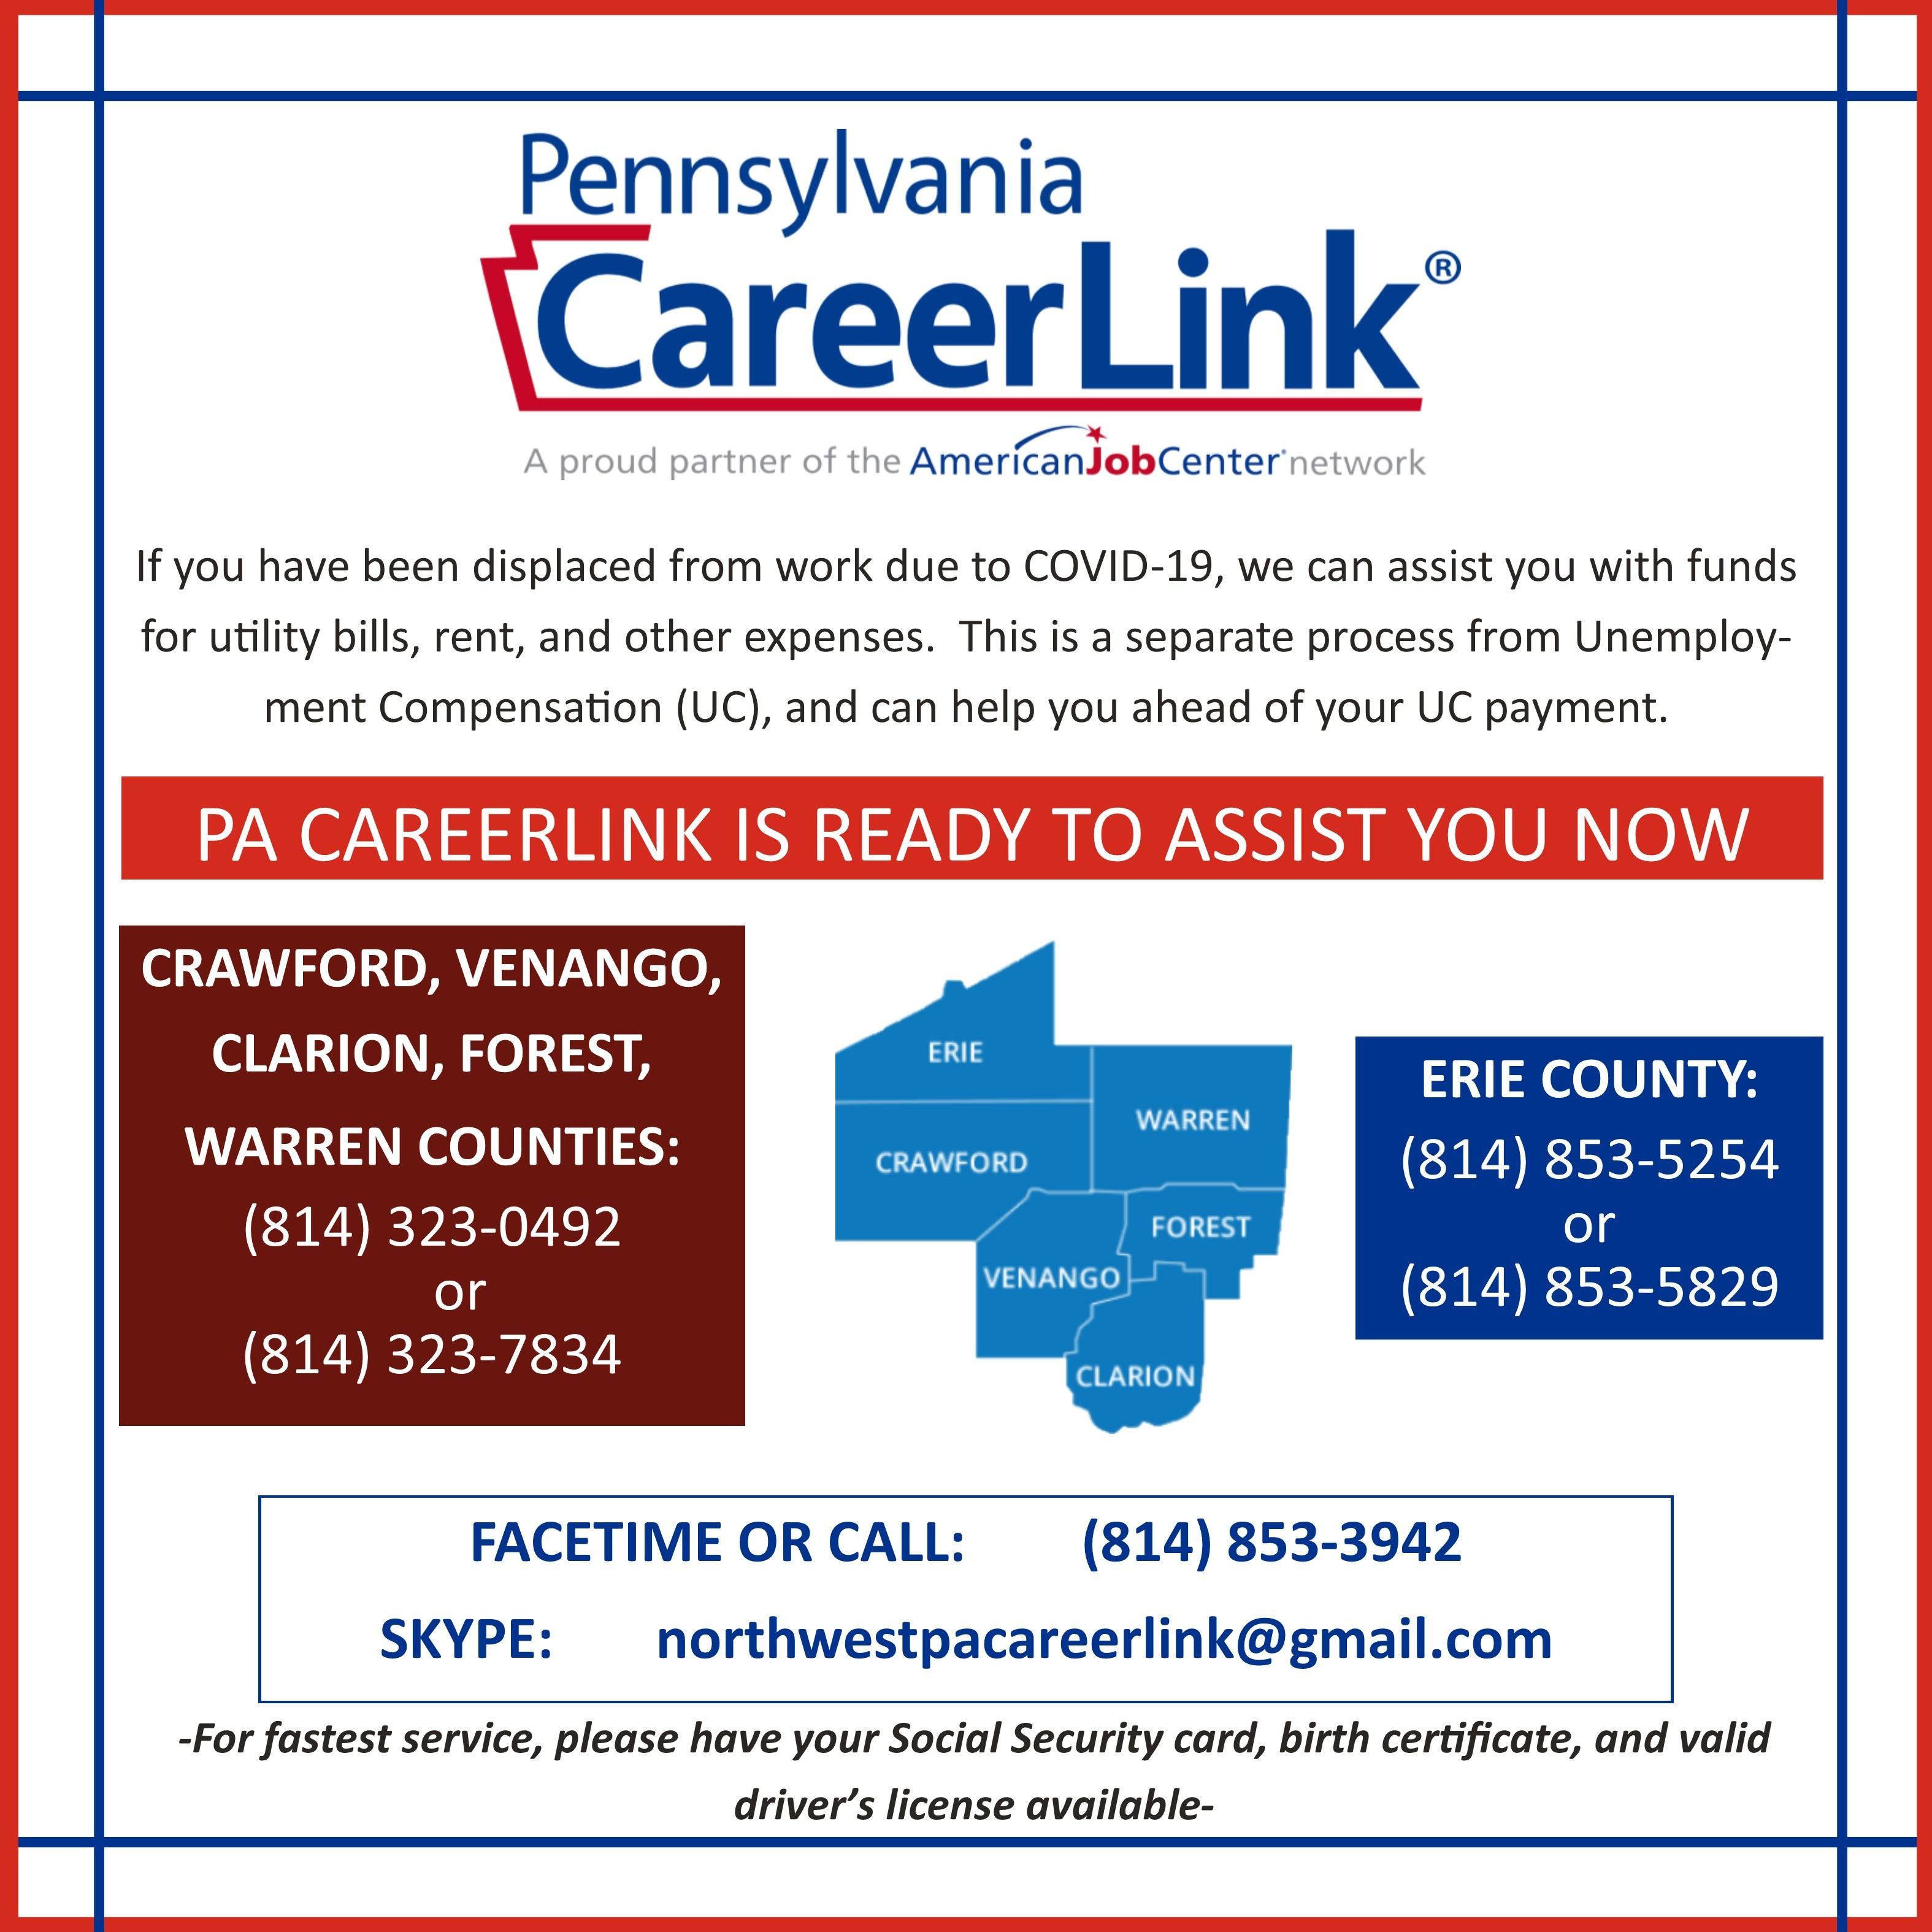 CareerLink Financial Assistance due to Job Displacement